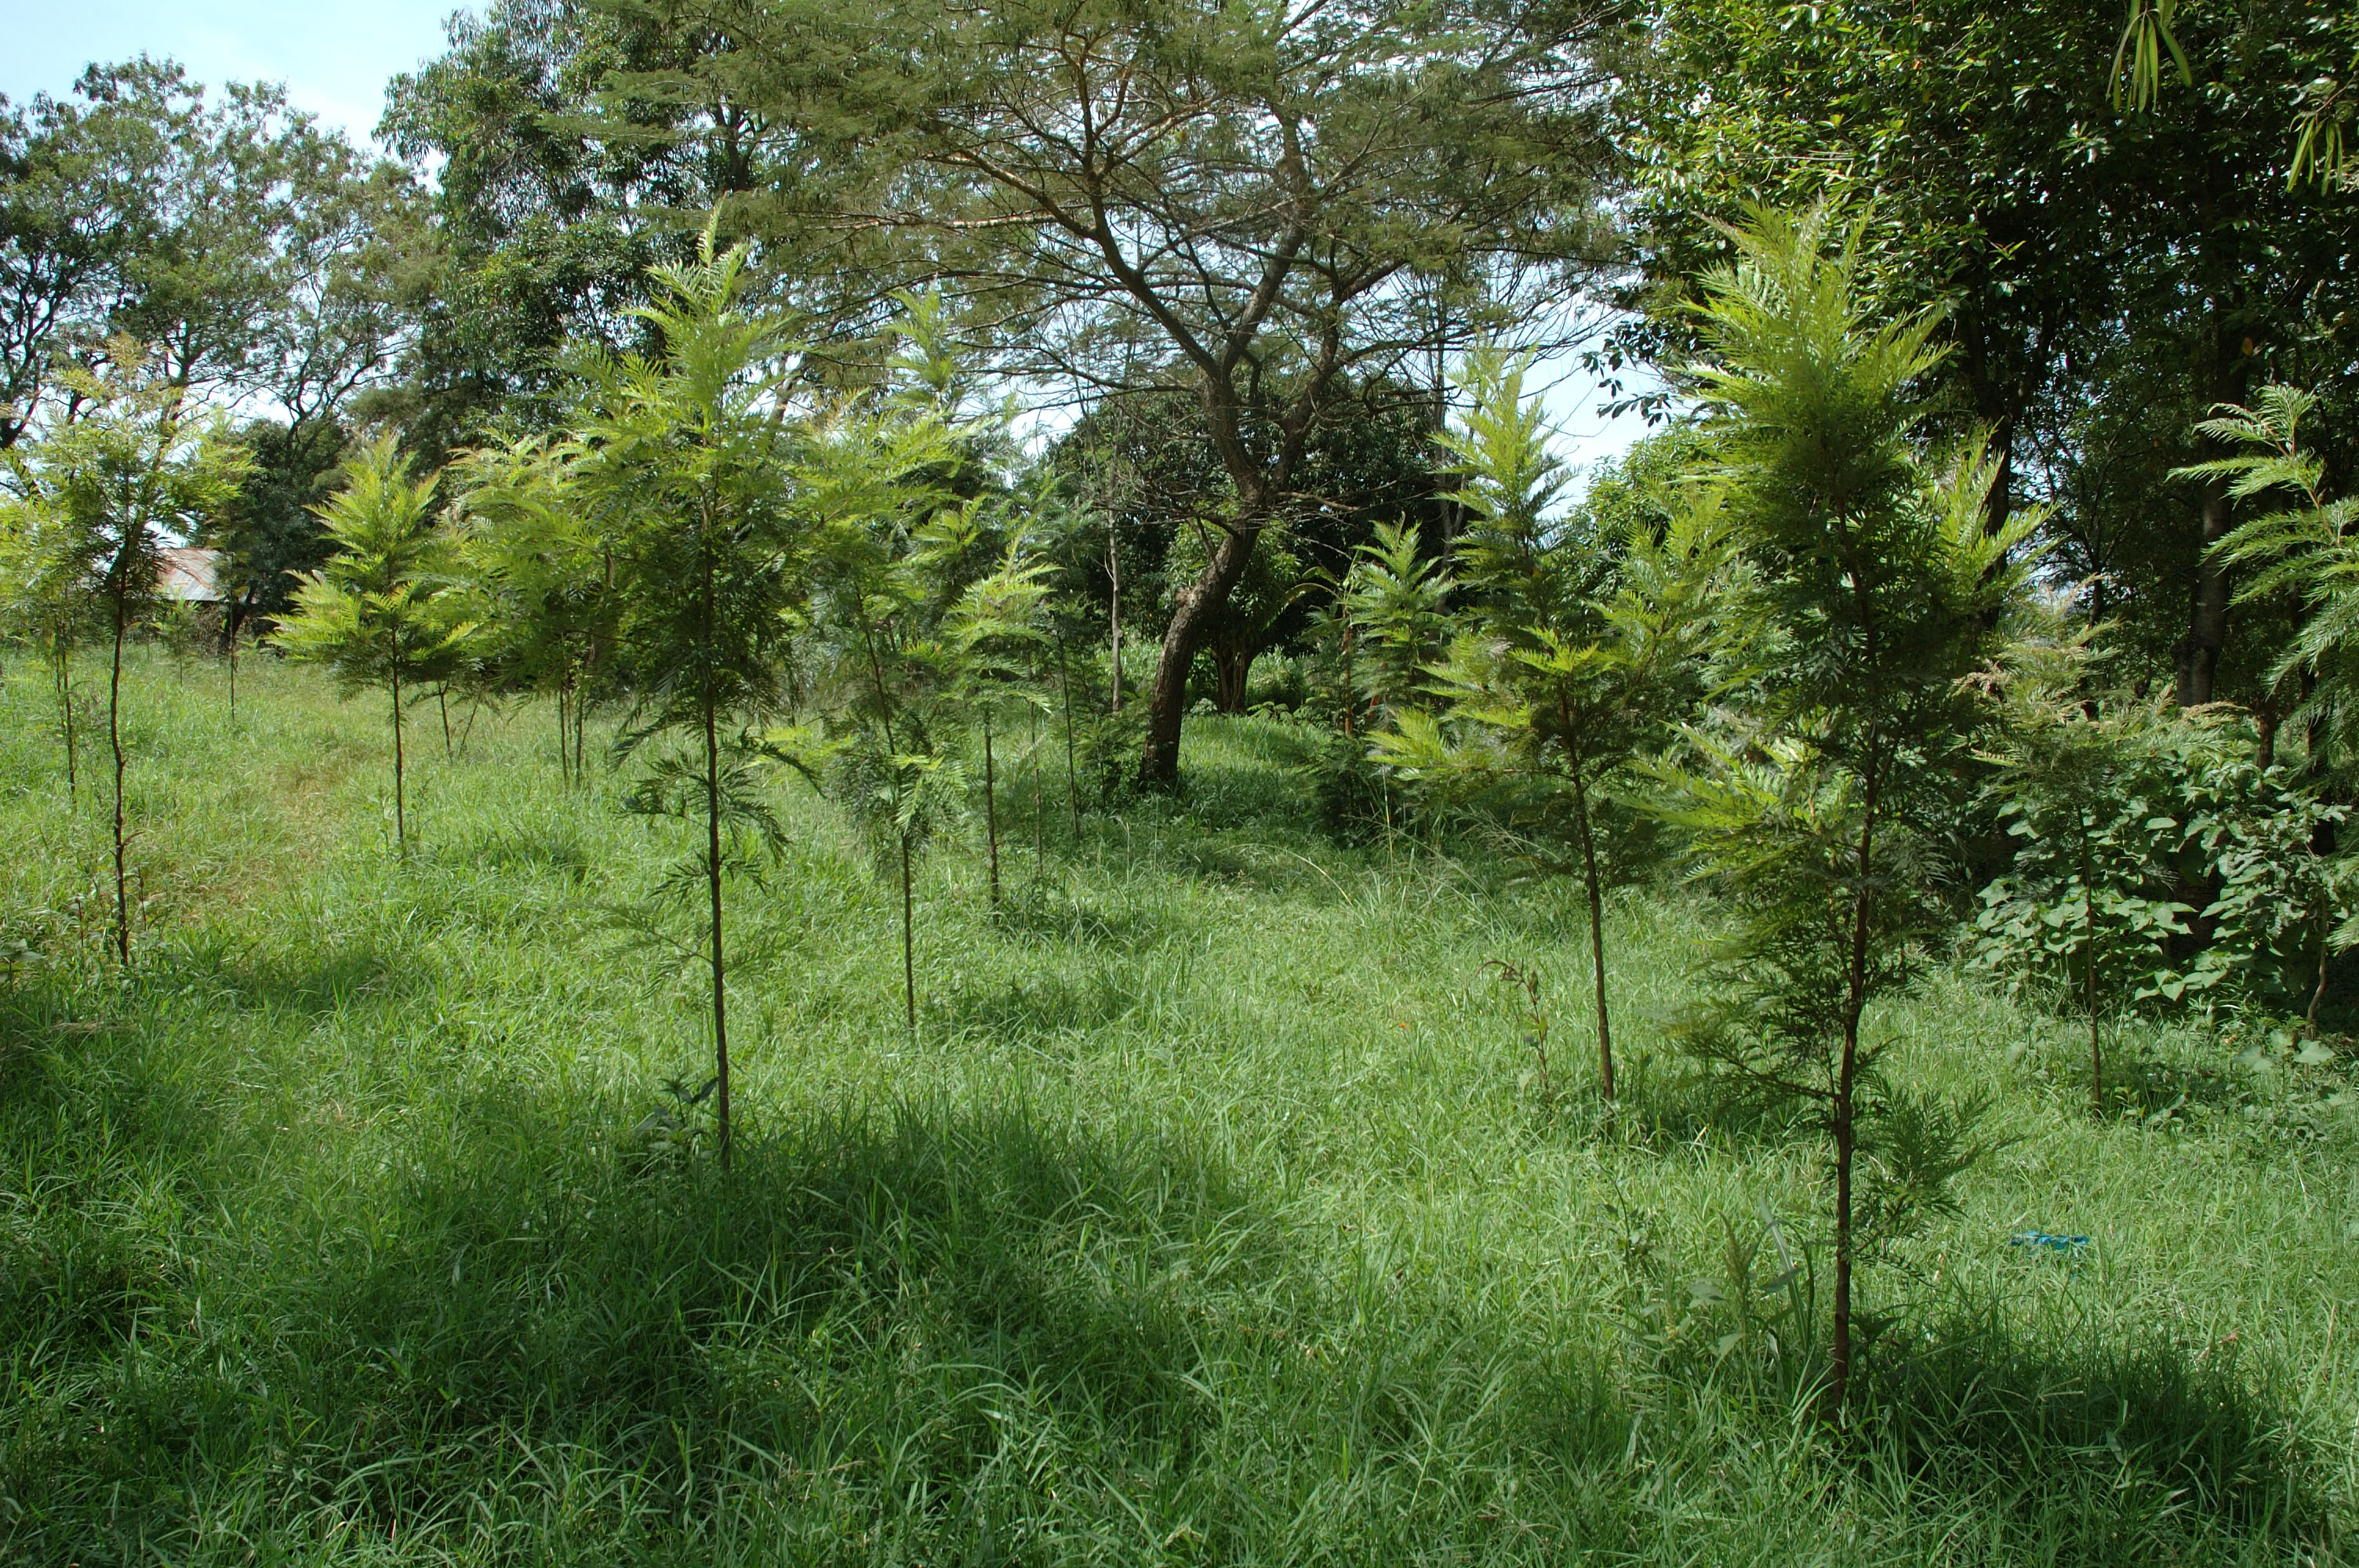 Grass growing among young tree plantation. Image copyrighted to ICRAF.